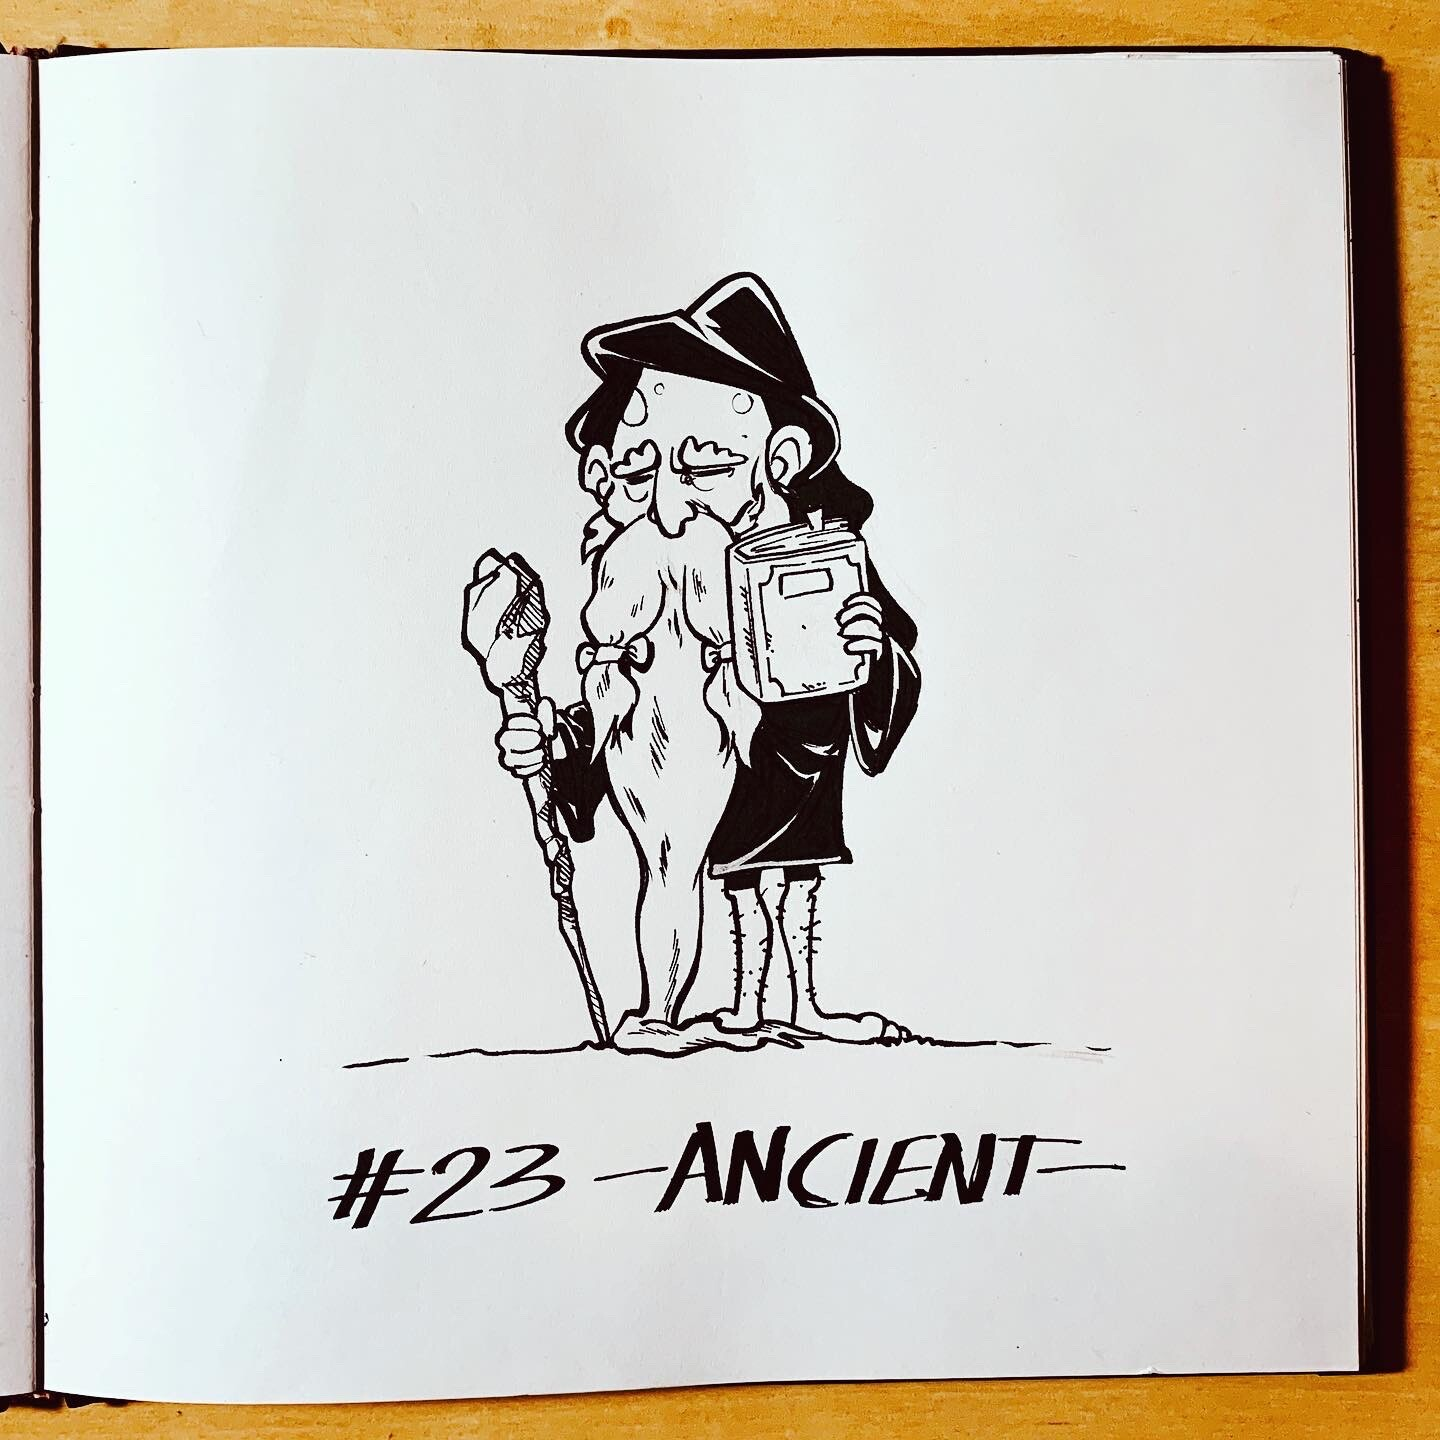 Inktober 2019: #23. Ancient